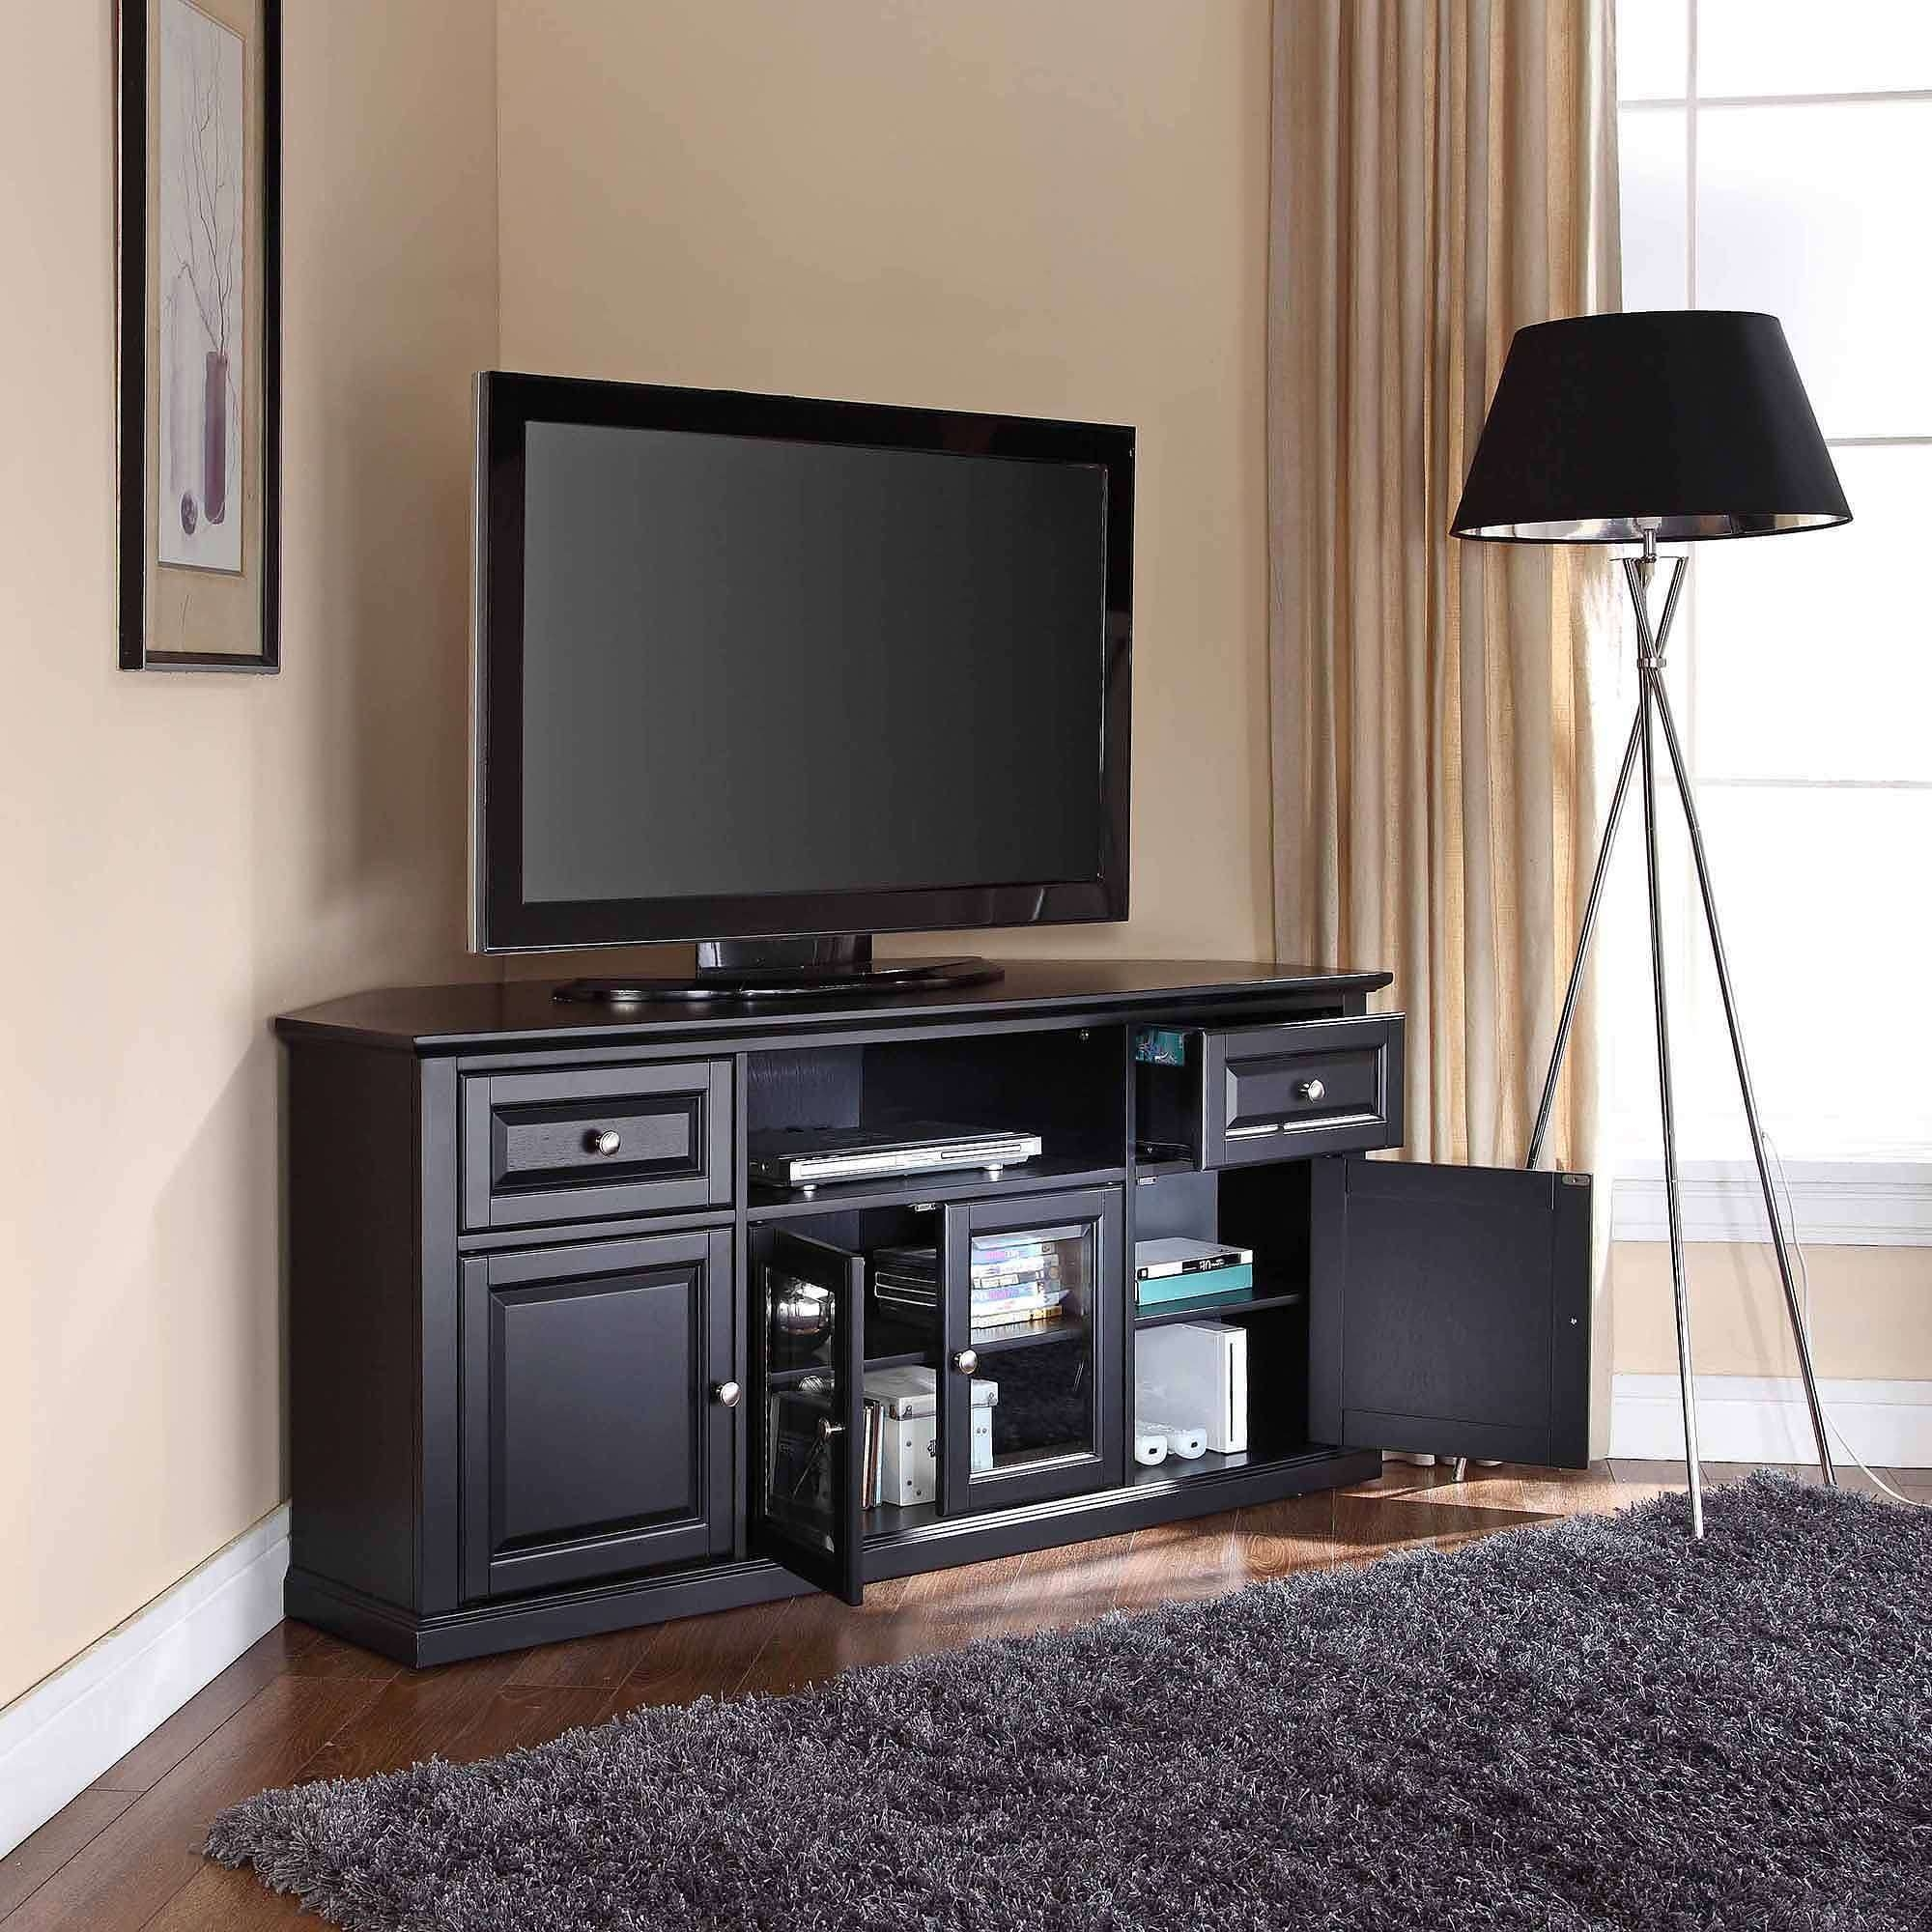 "Crosley Furniture Corner Tv Stand For Tvs Up To 60"" – Walmart Intended For Tv Stands Corner Units (View 6 of 15)"